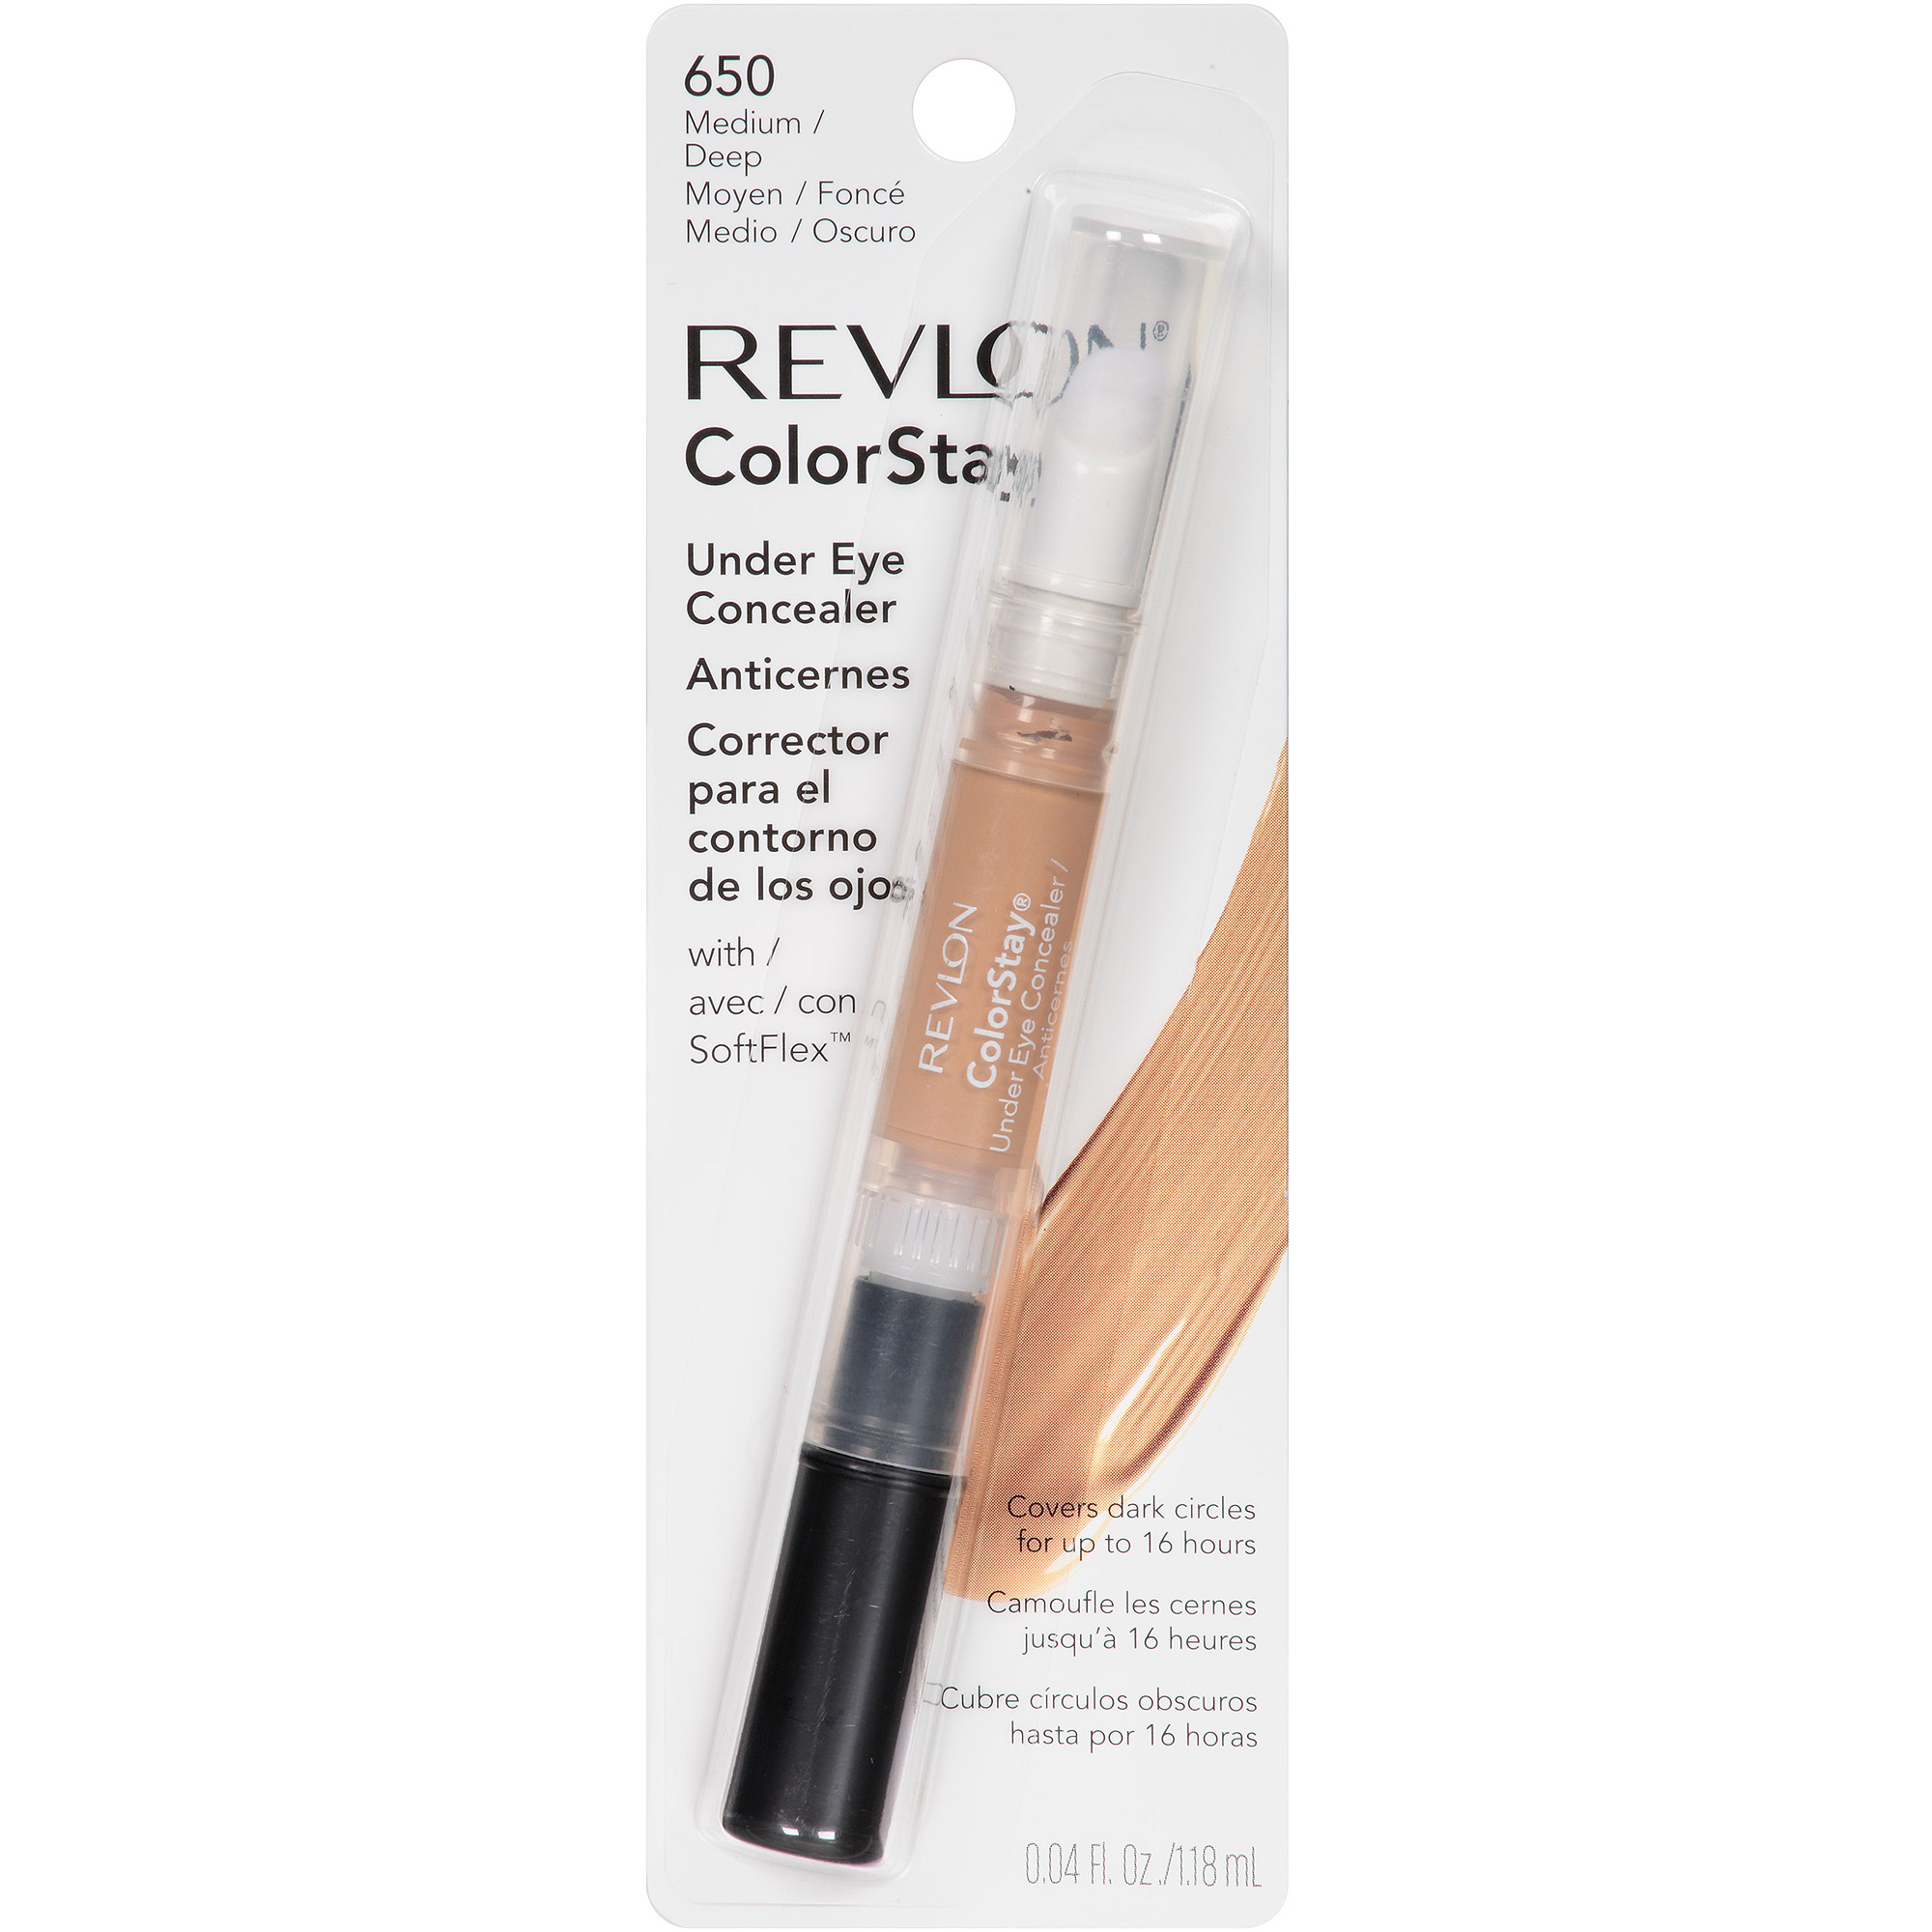 Revlon ColorStay Under Eye Concealer, 650 Medium/Deep, 0.04 fl oz